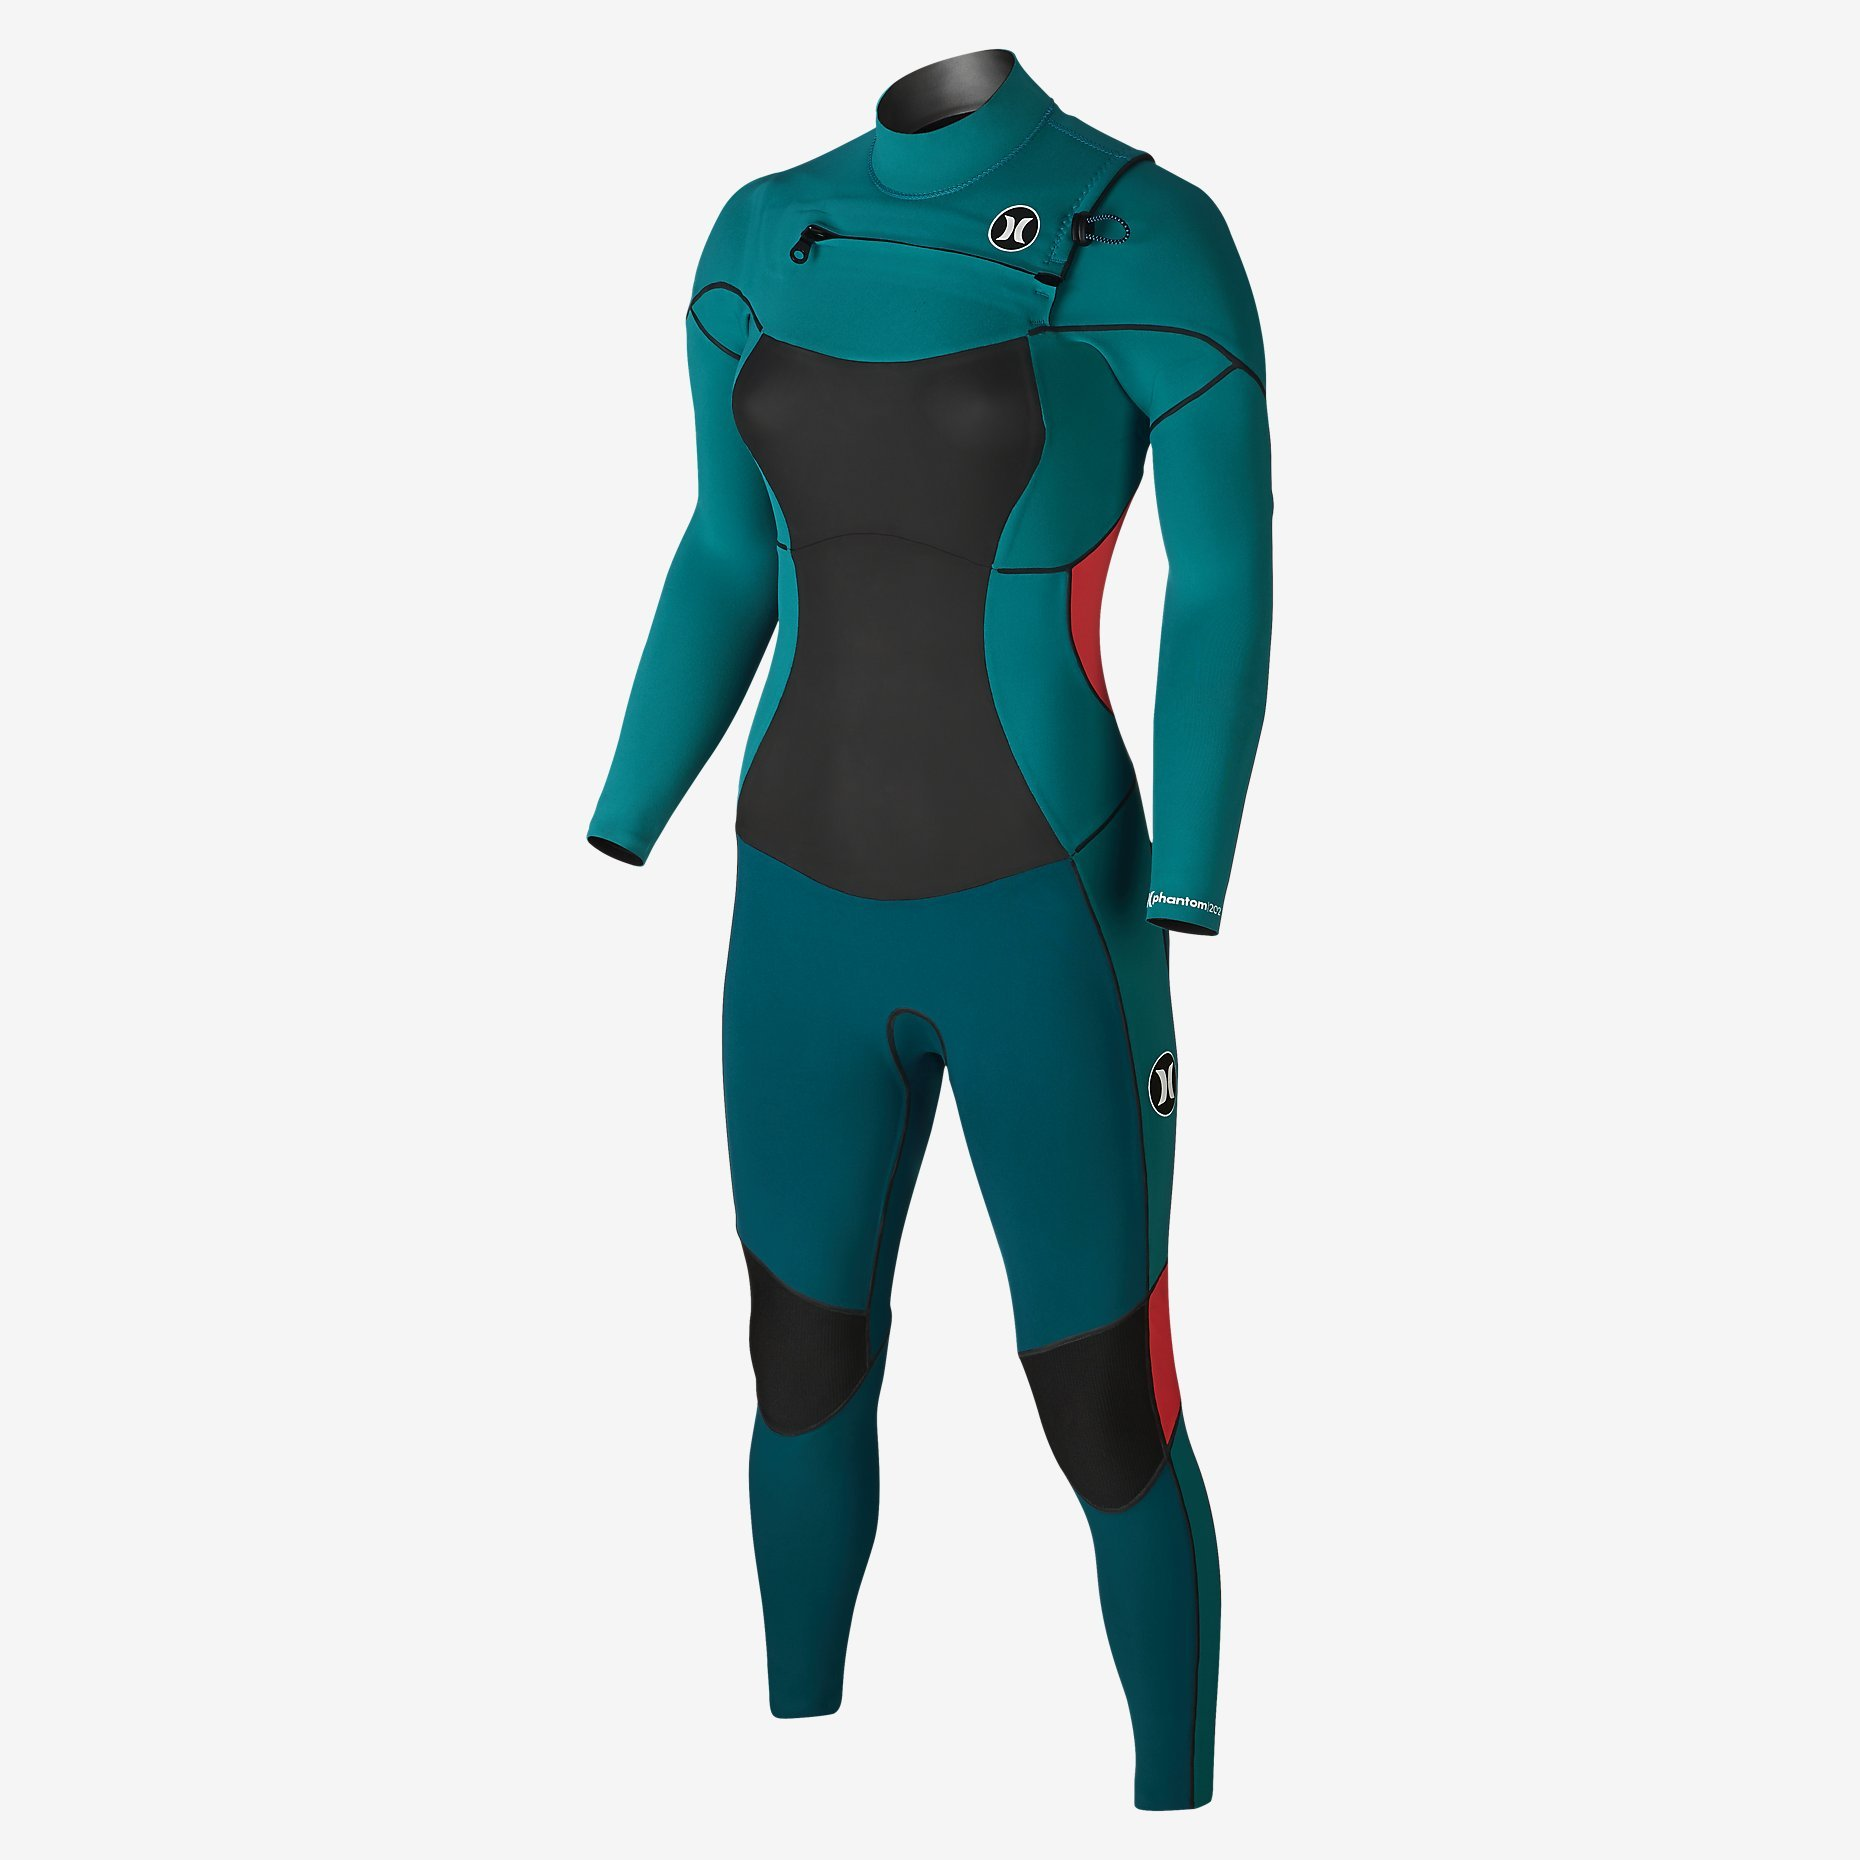 Hurley GFS0000050 Womens Phantom 202 Full, Radiant Emerald - 6 by Hurley